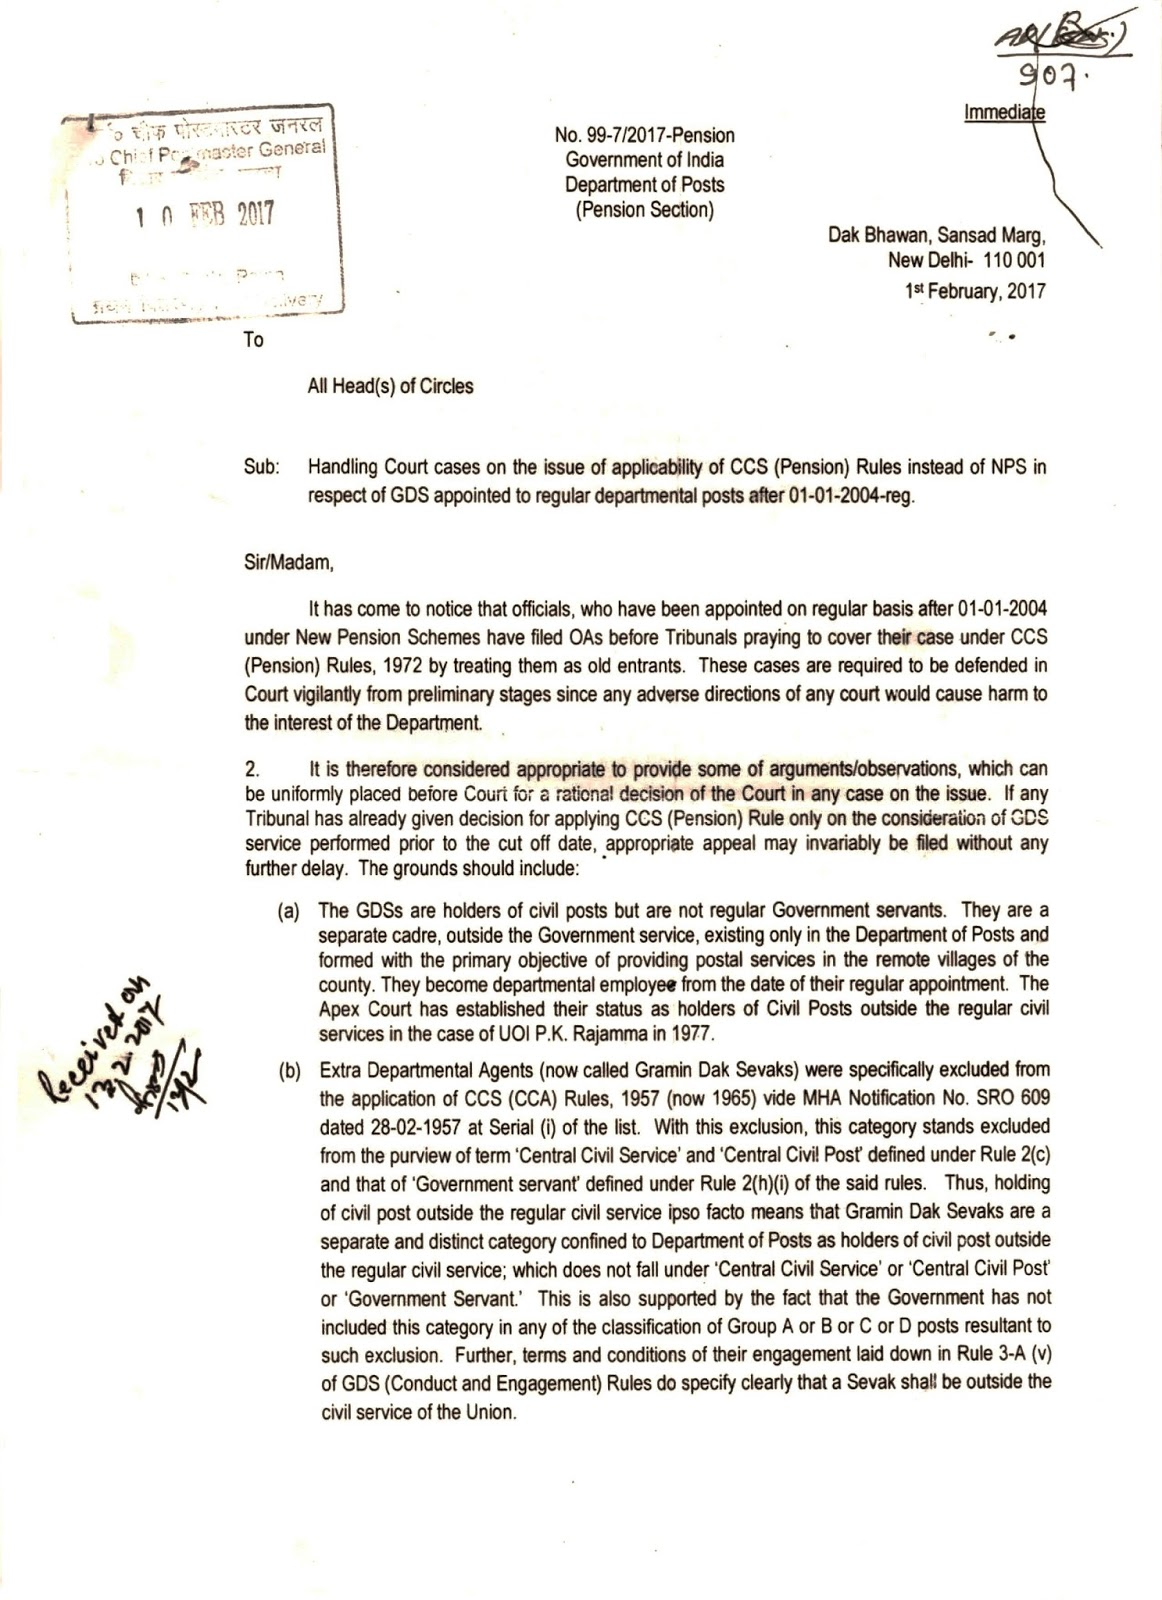 Applicability of CCS (Pension) Rules instead of NPS-1